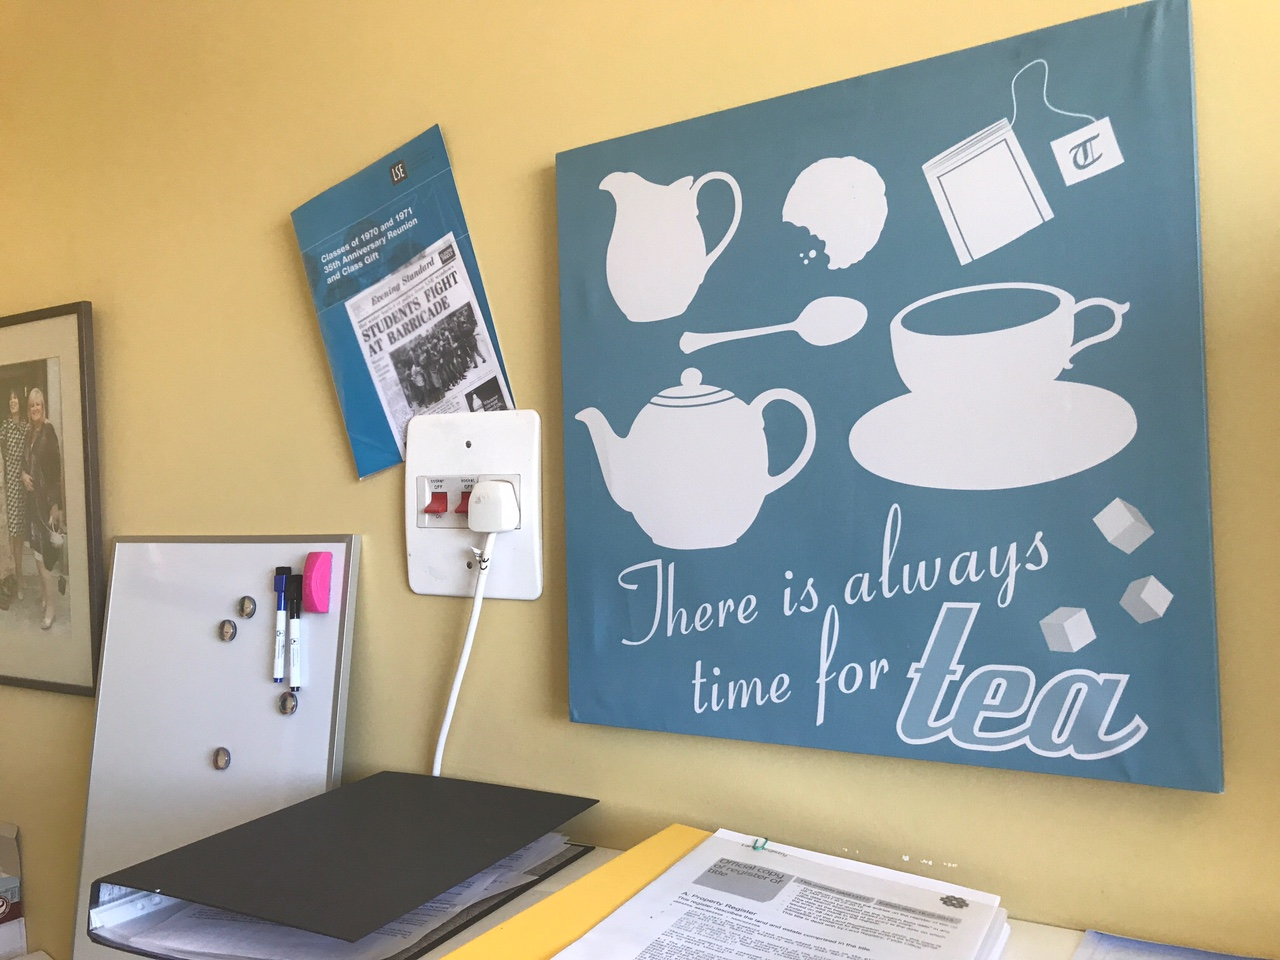 There is always time for tea poster, Shula's office poster